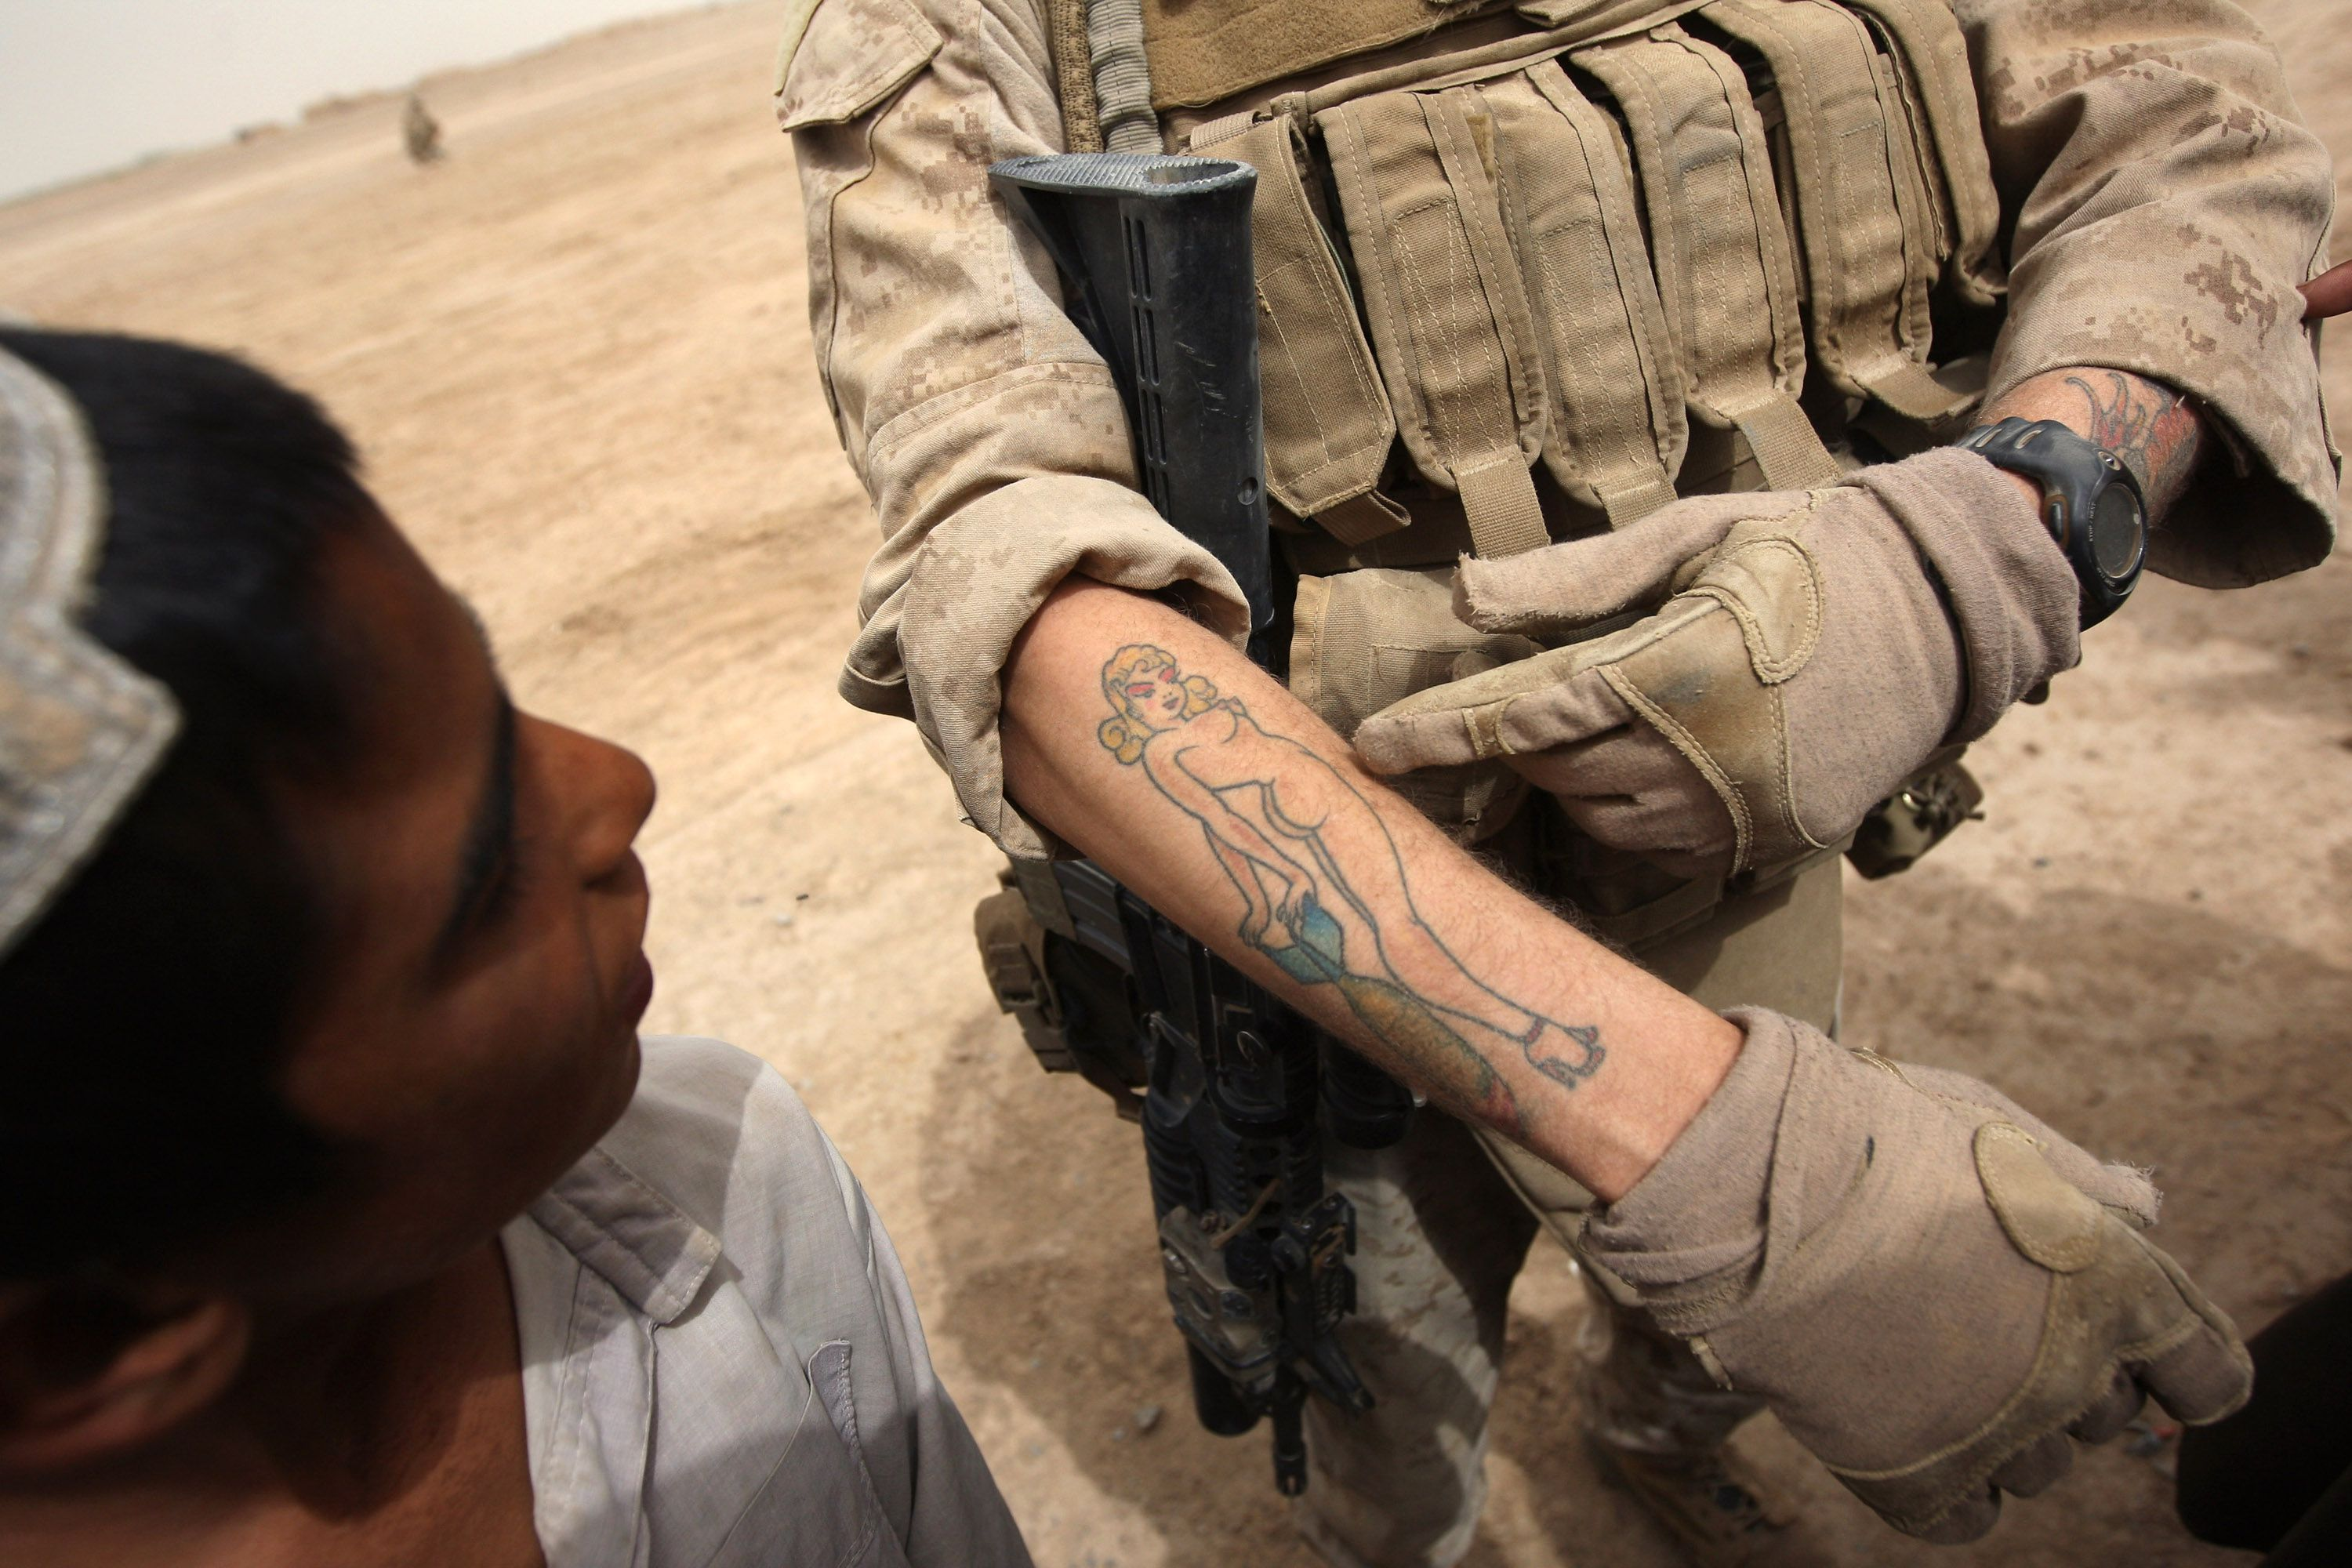 Marine corps weight and fitness requirements us marines on operations in remote southwest afghanistan nvjuhfo Gallery